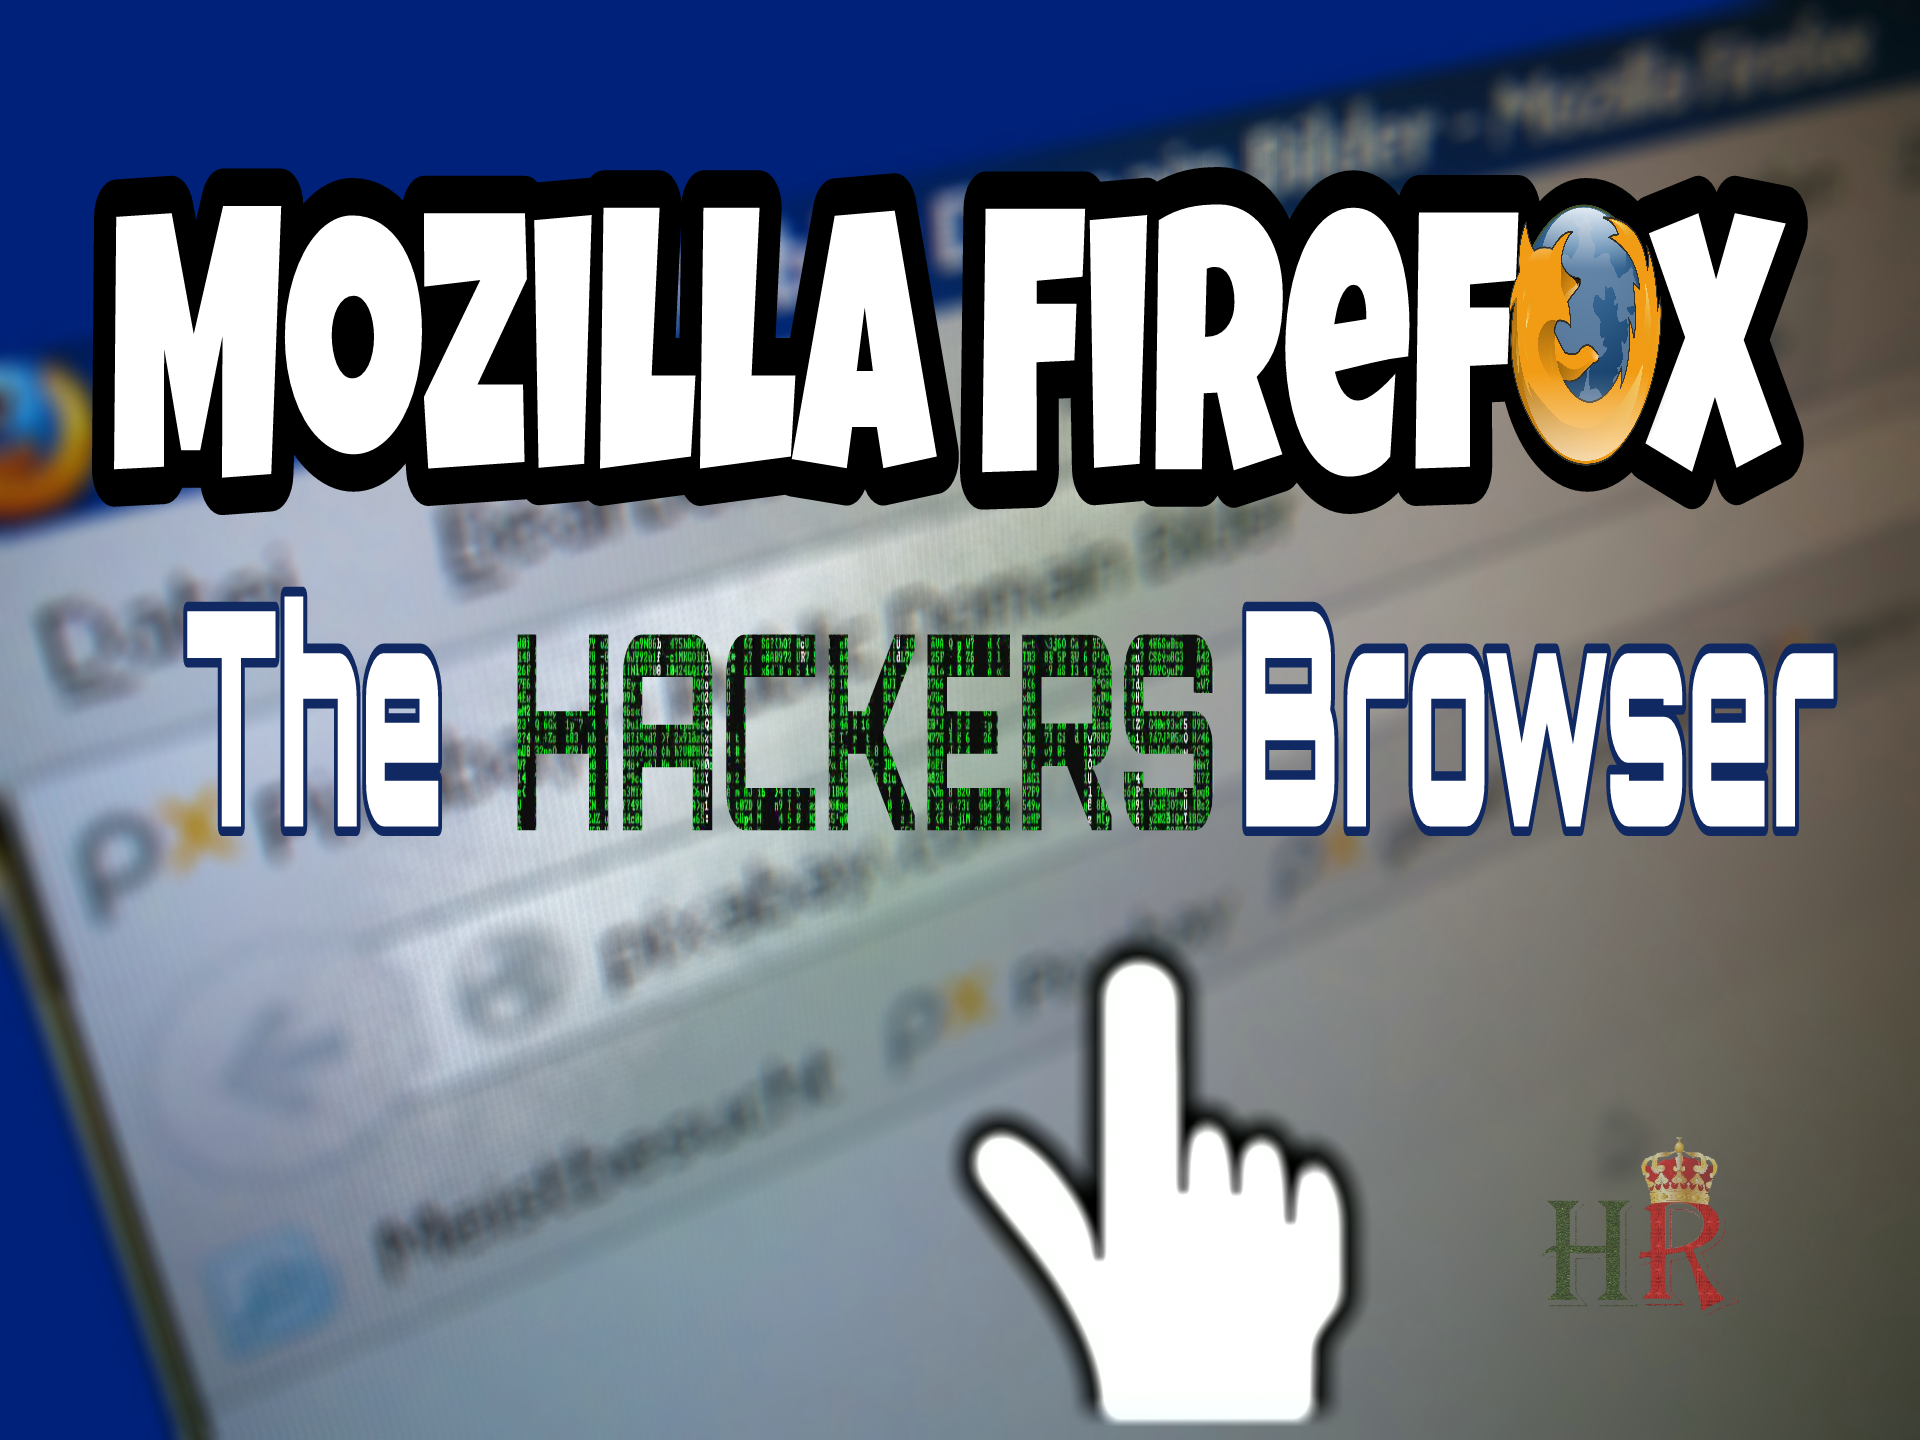 Mozilla Firefox - The hackers browser